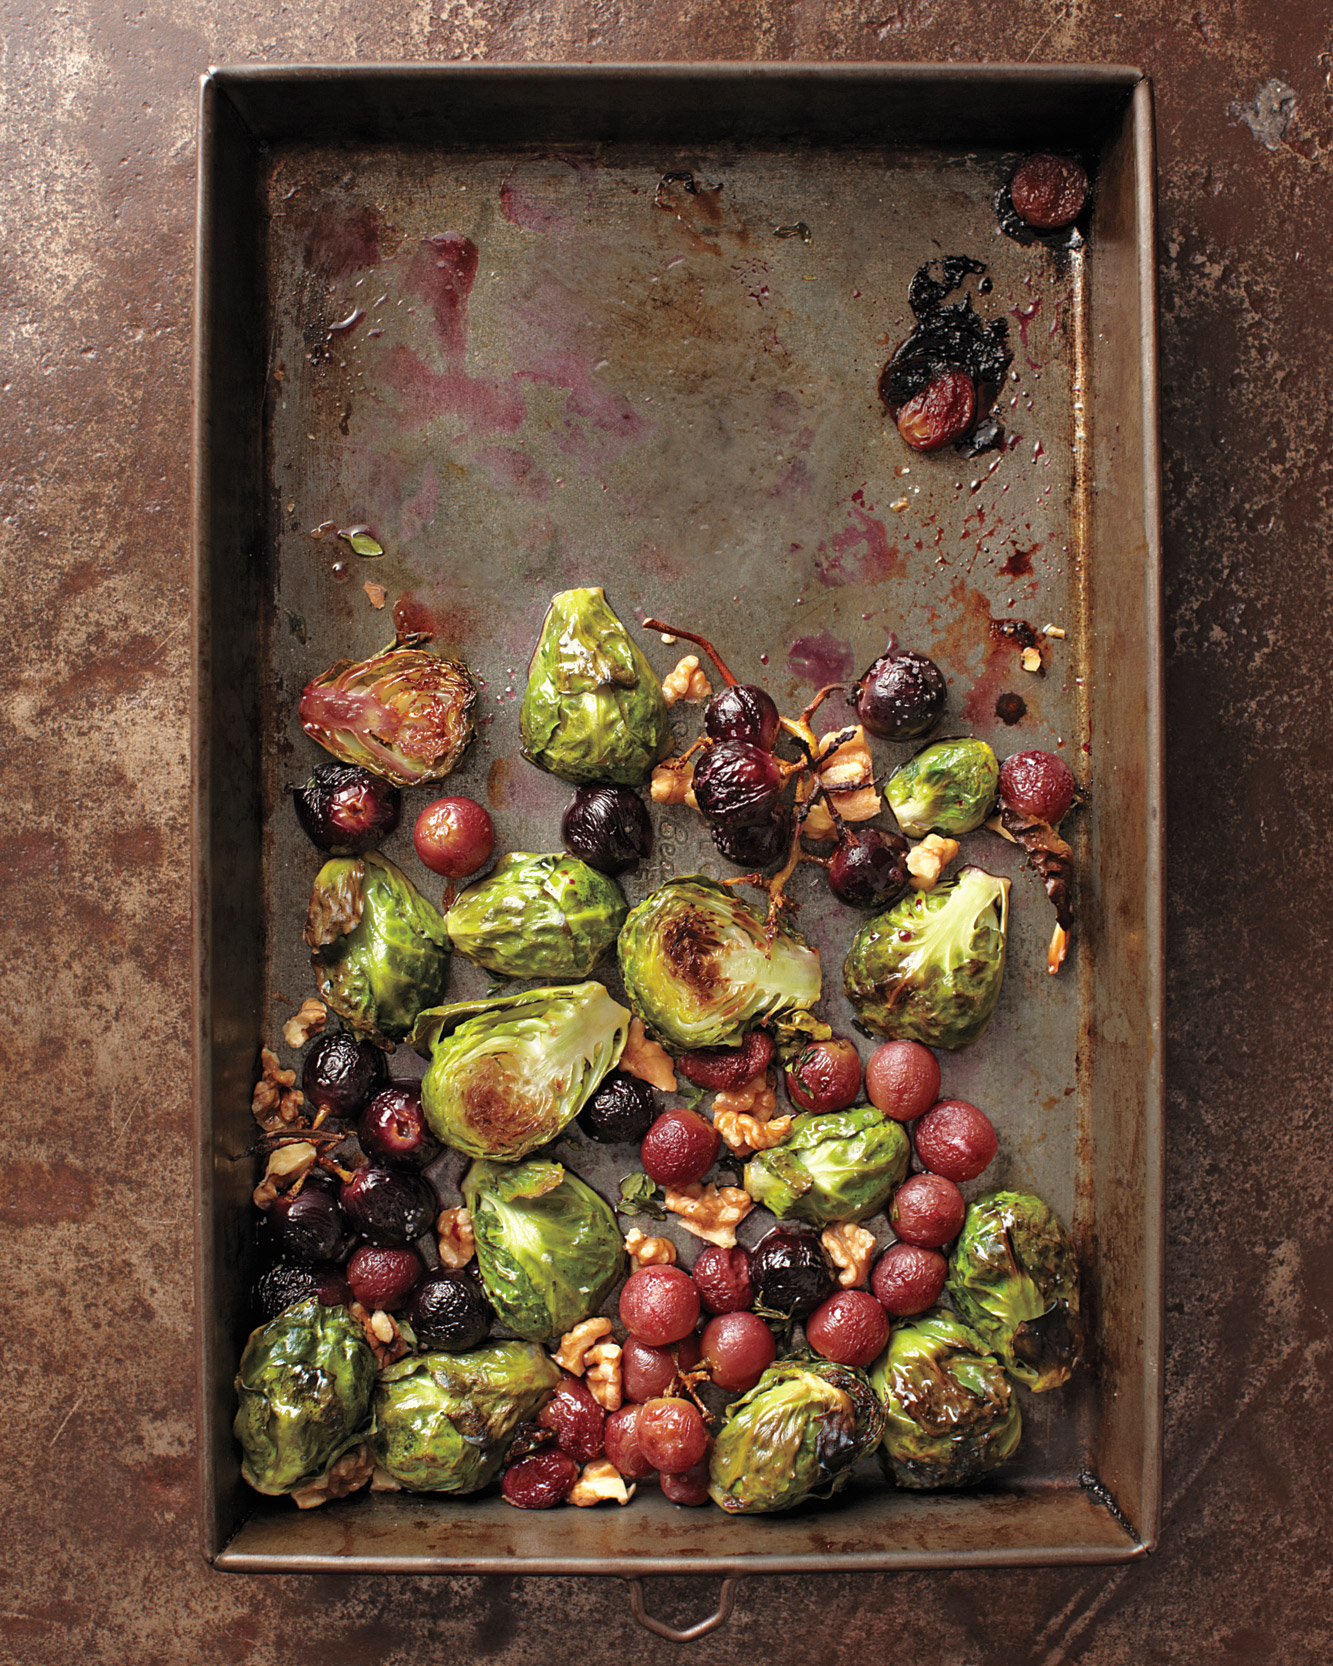 brussels-sprouts-mbd107773.jpg